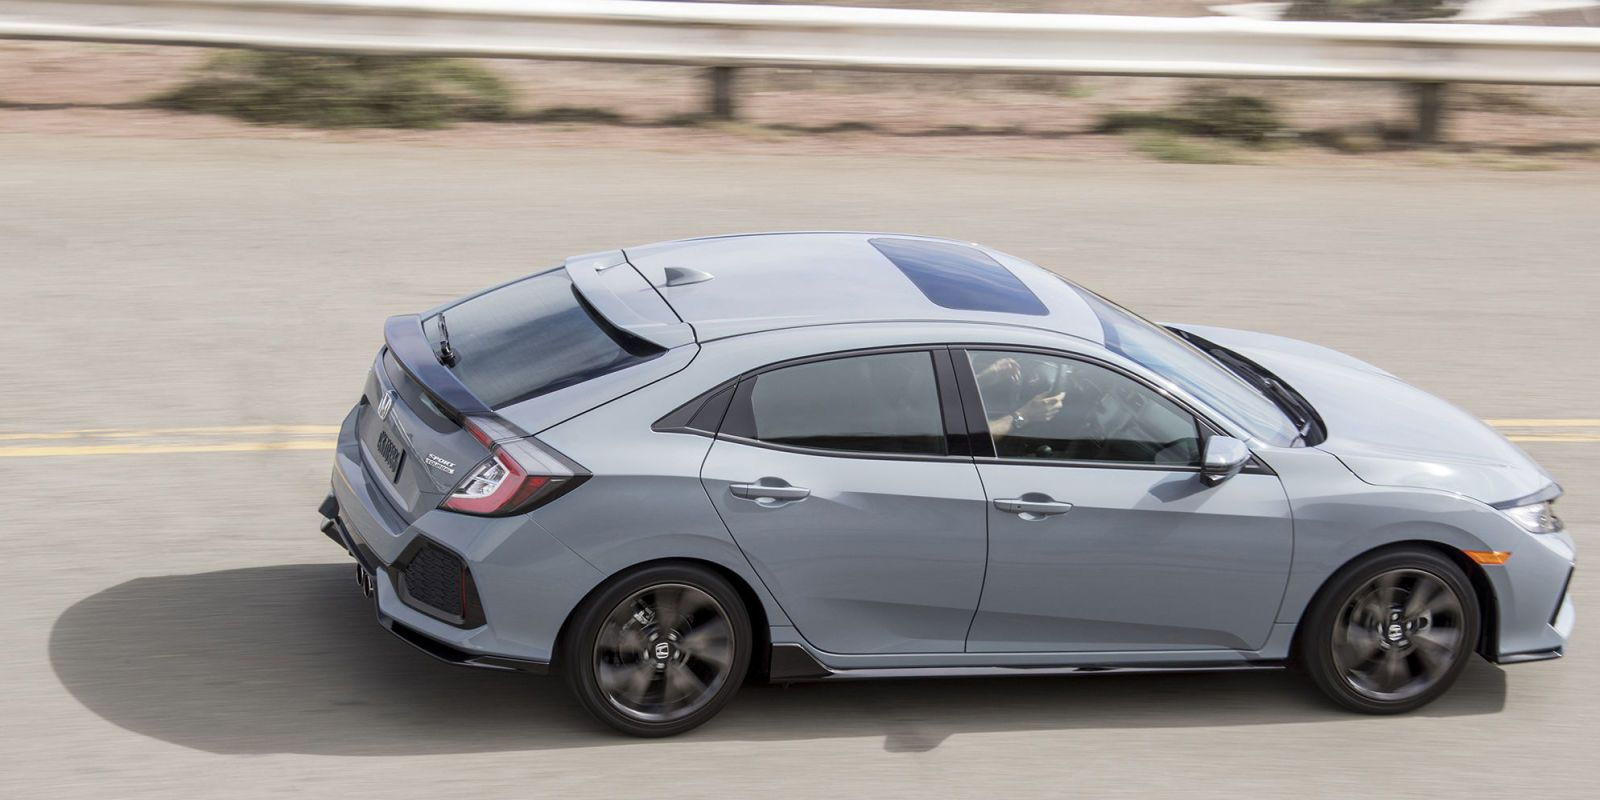 Marvelous Itu0027s Been A Long Time Since Honda Offered A Civic Hatchback In The U.S.  Marketu20142005 Saw The Demise Of The Seventh Generation Civic Si Hatch.